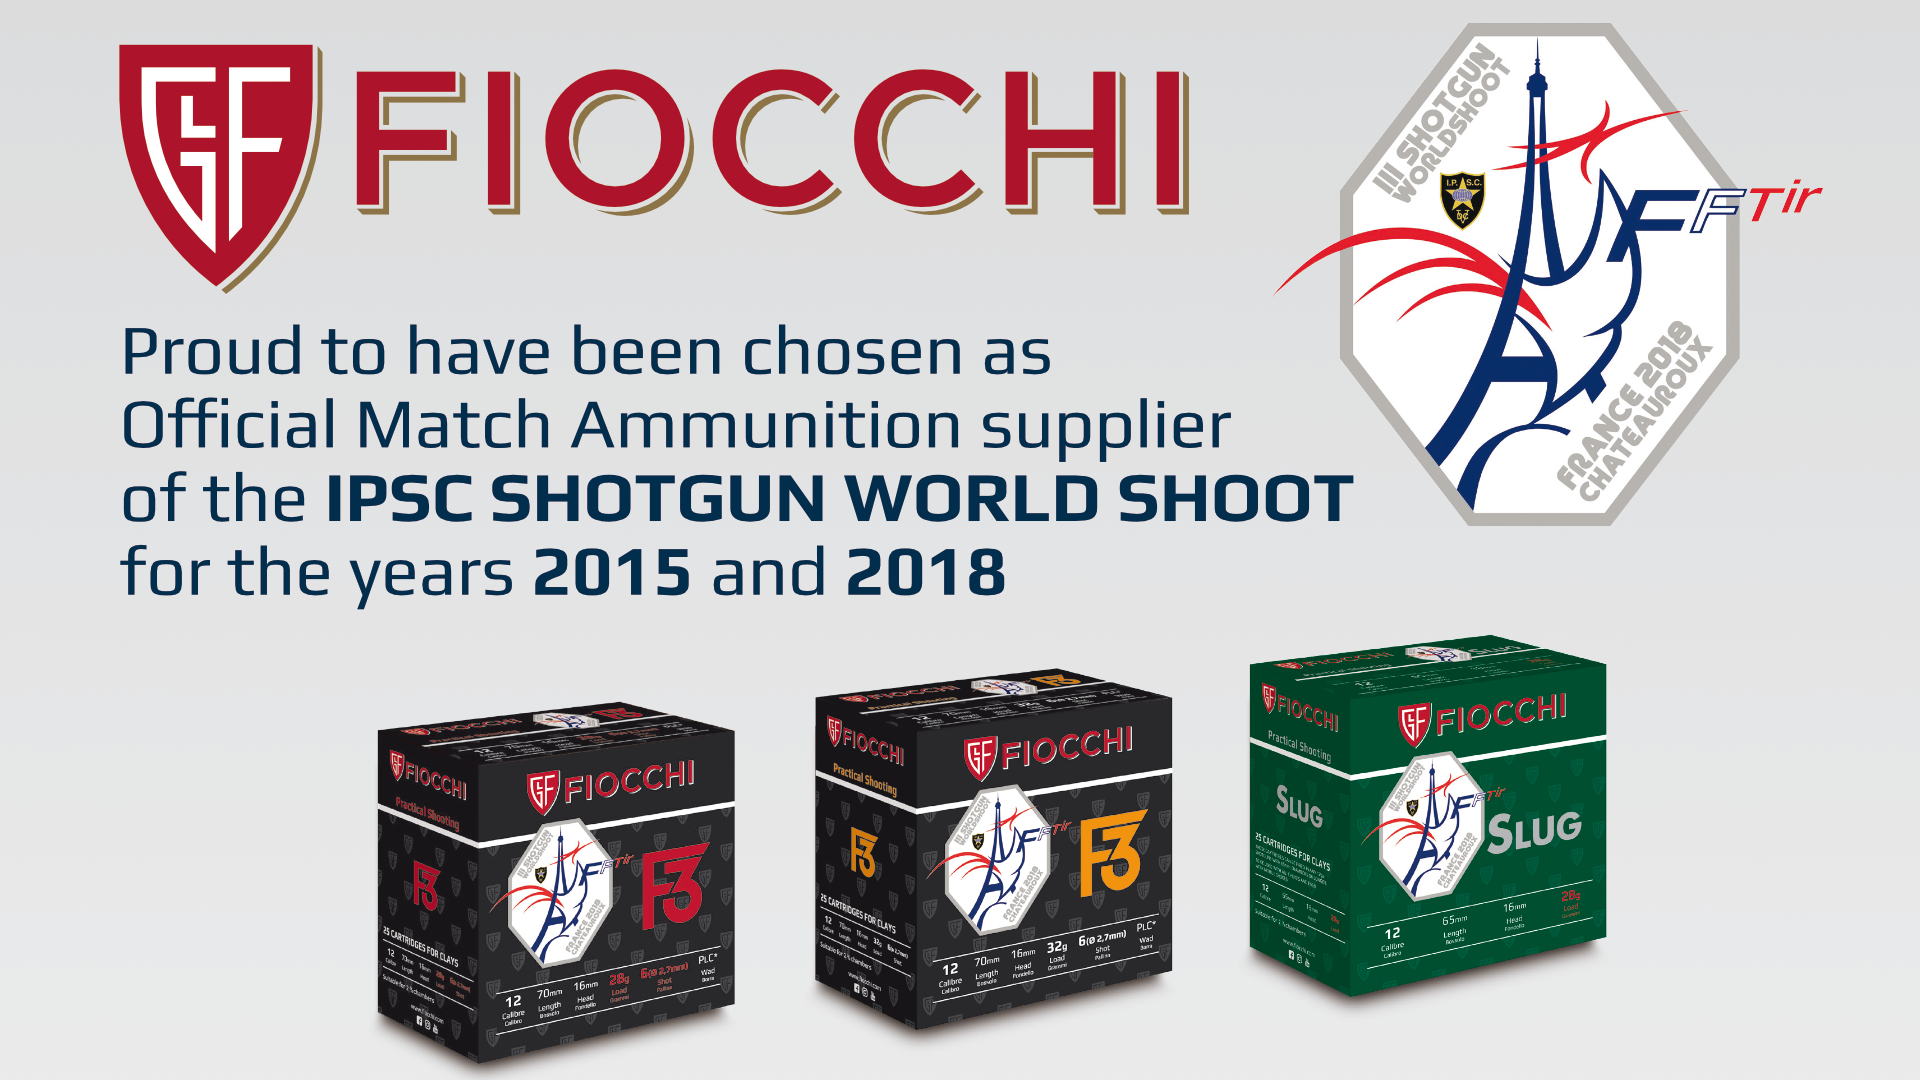 IPSC CHOOSES FIOCCHI AS OFFICIAL MATCH AMMUNITION SUPPLIER FOR THE III SHOTGUN WORLD SHOOT